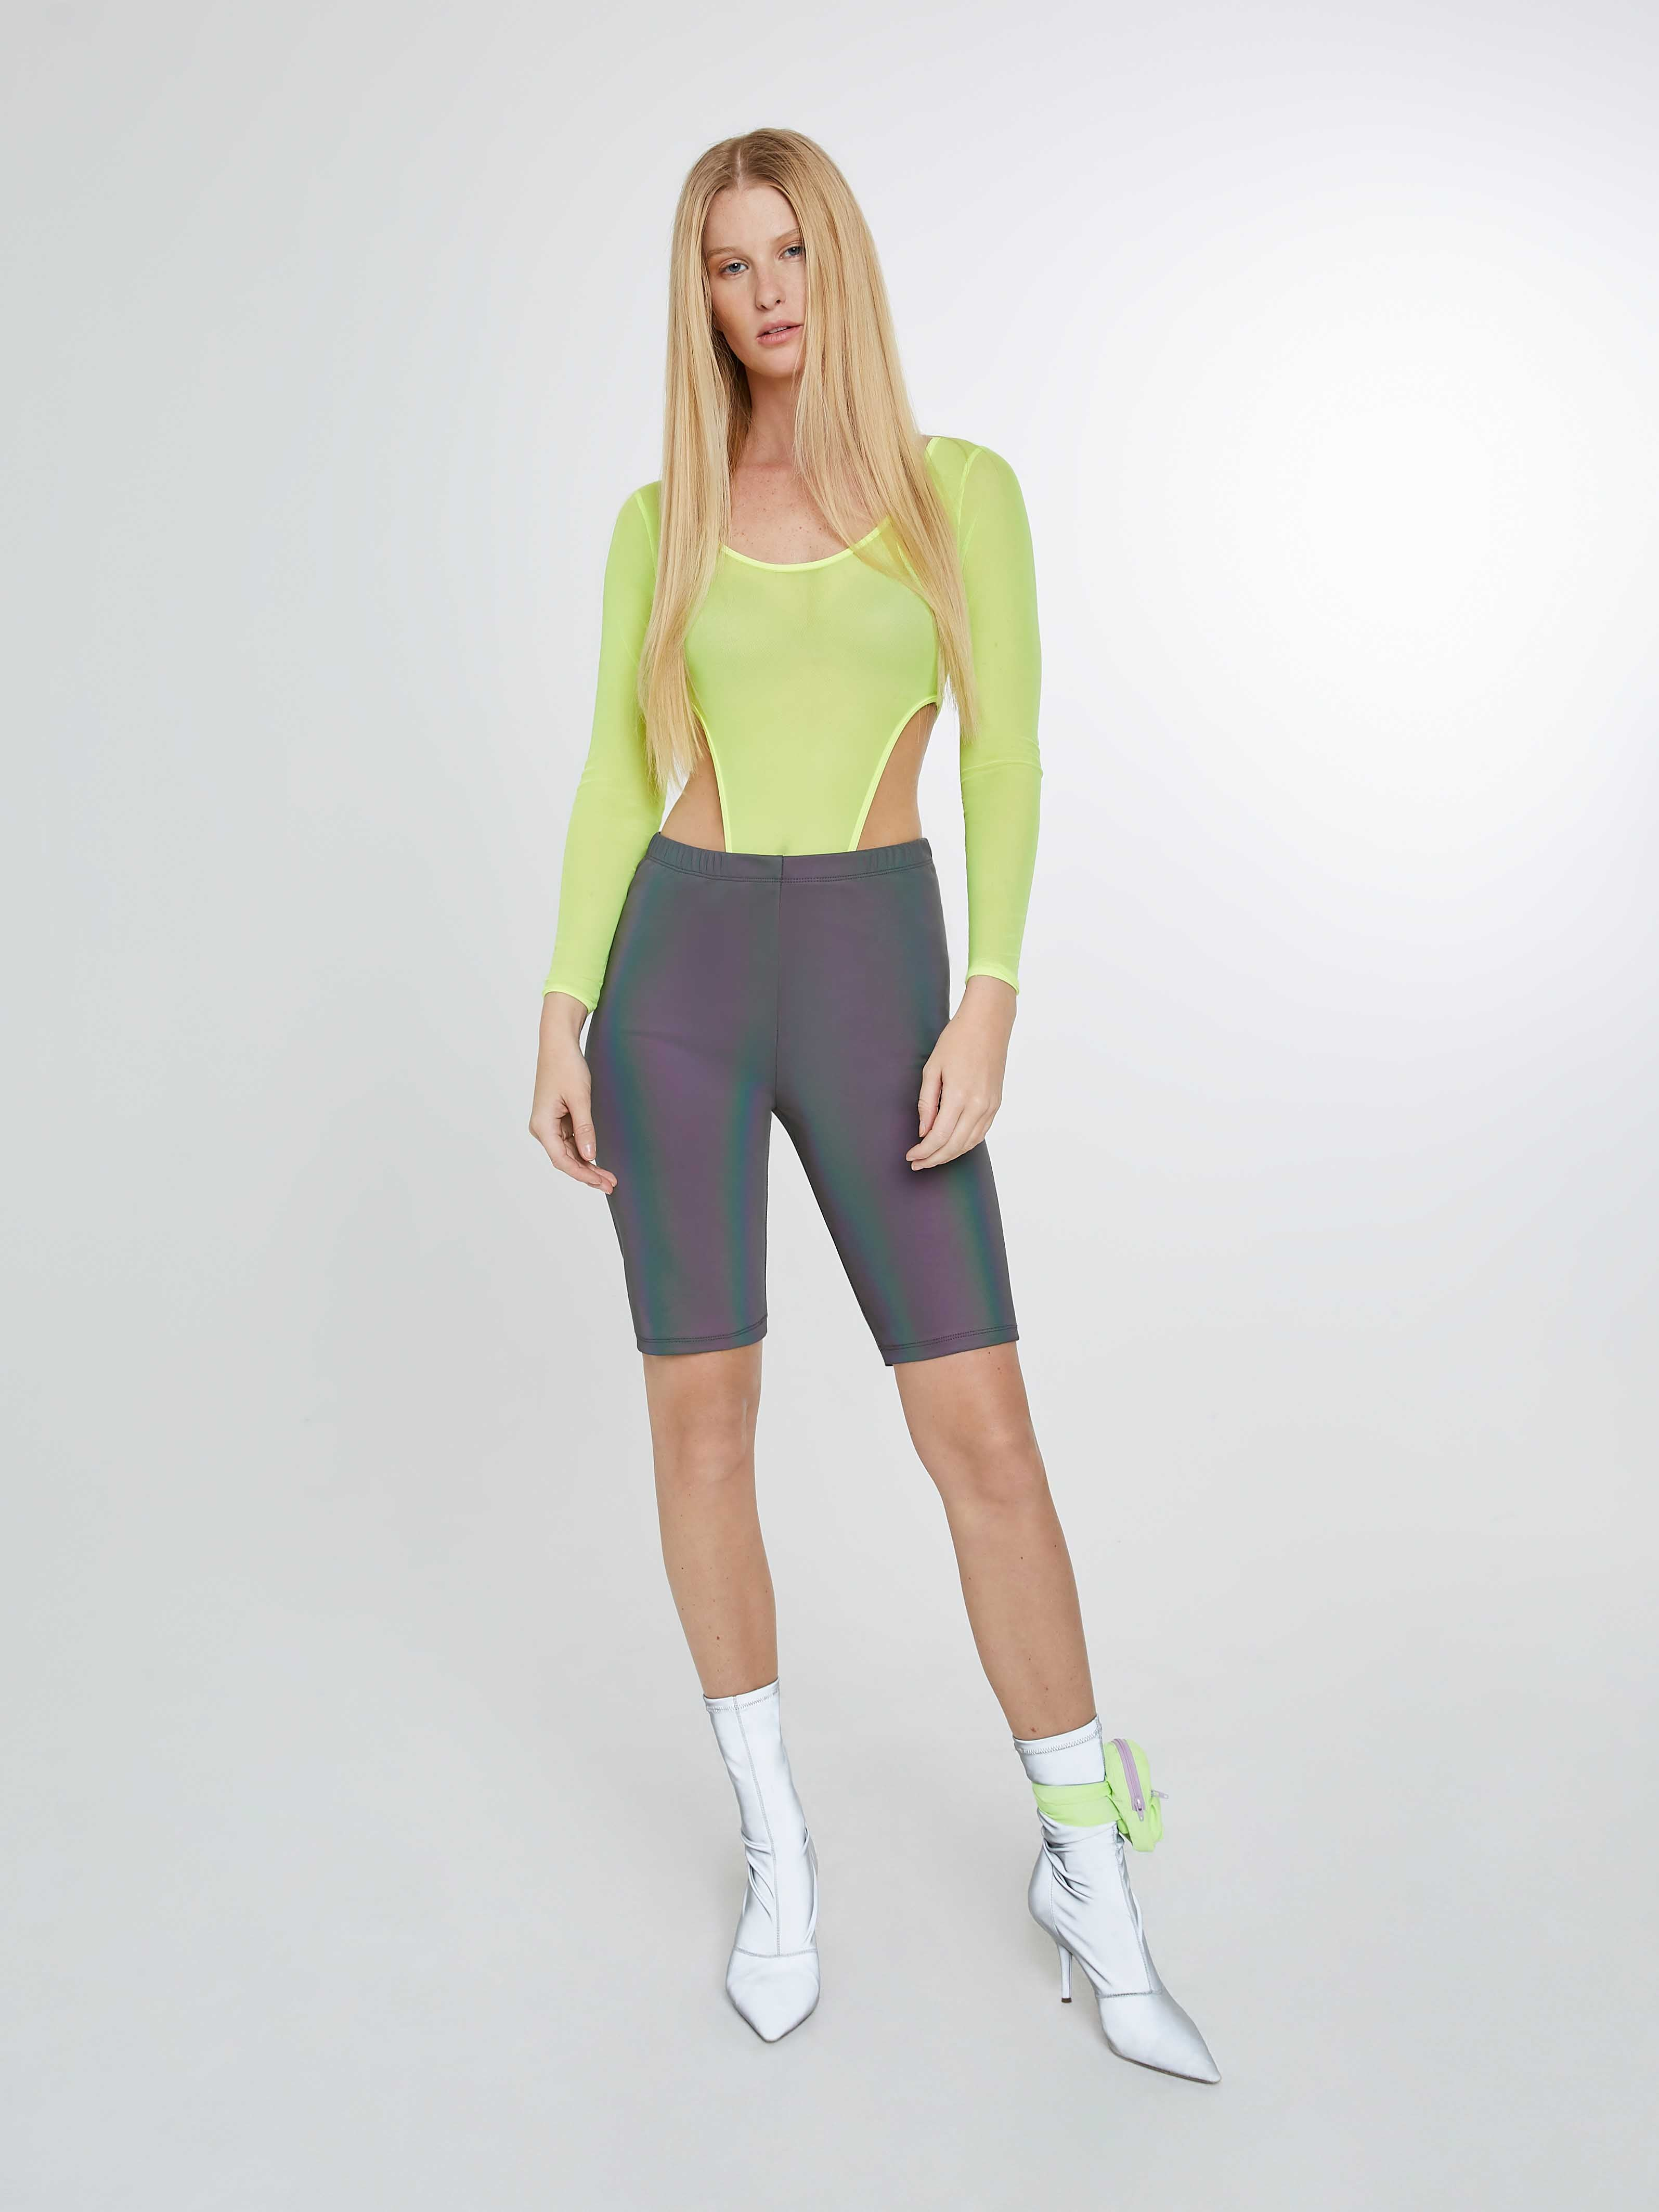 Neon Yellow mesh bodysuit